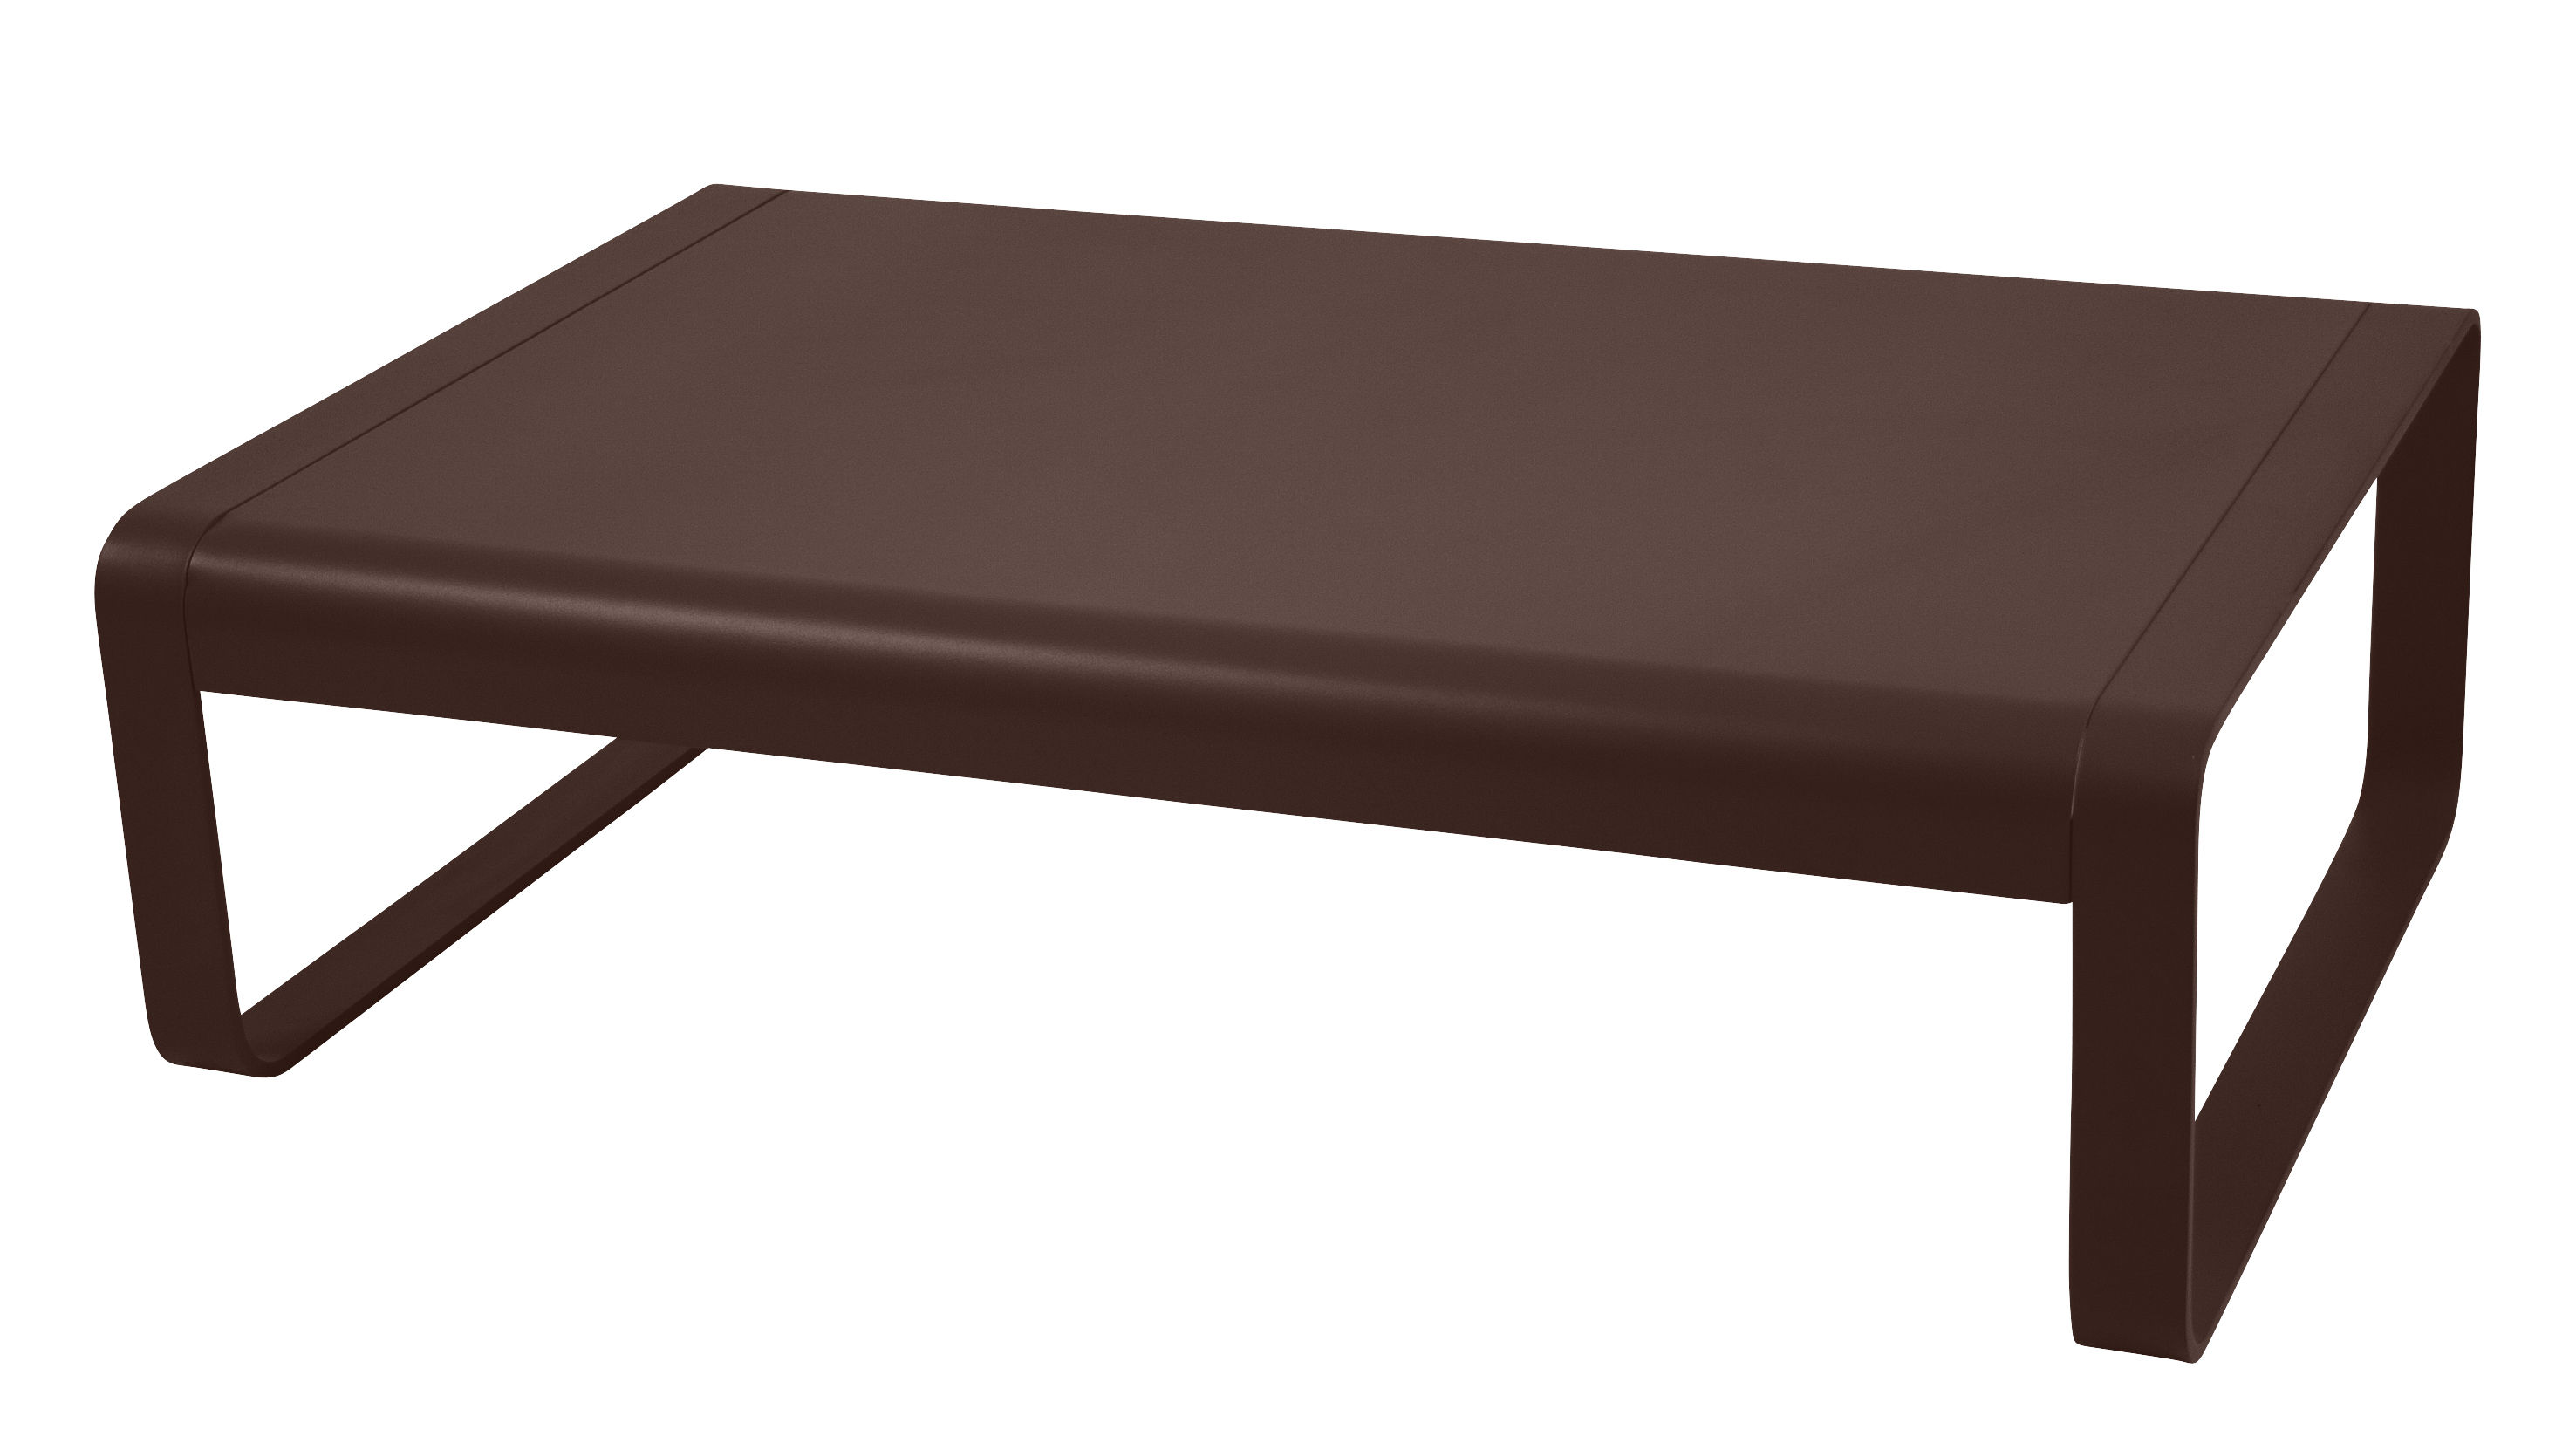 table basse bellevie aluminium 103 x 75 cm rouille fermob made in design. Black Bedroom Furniture Sets. Home Design Ideas